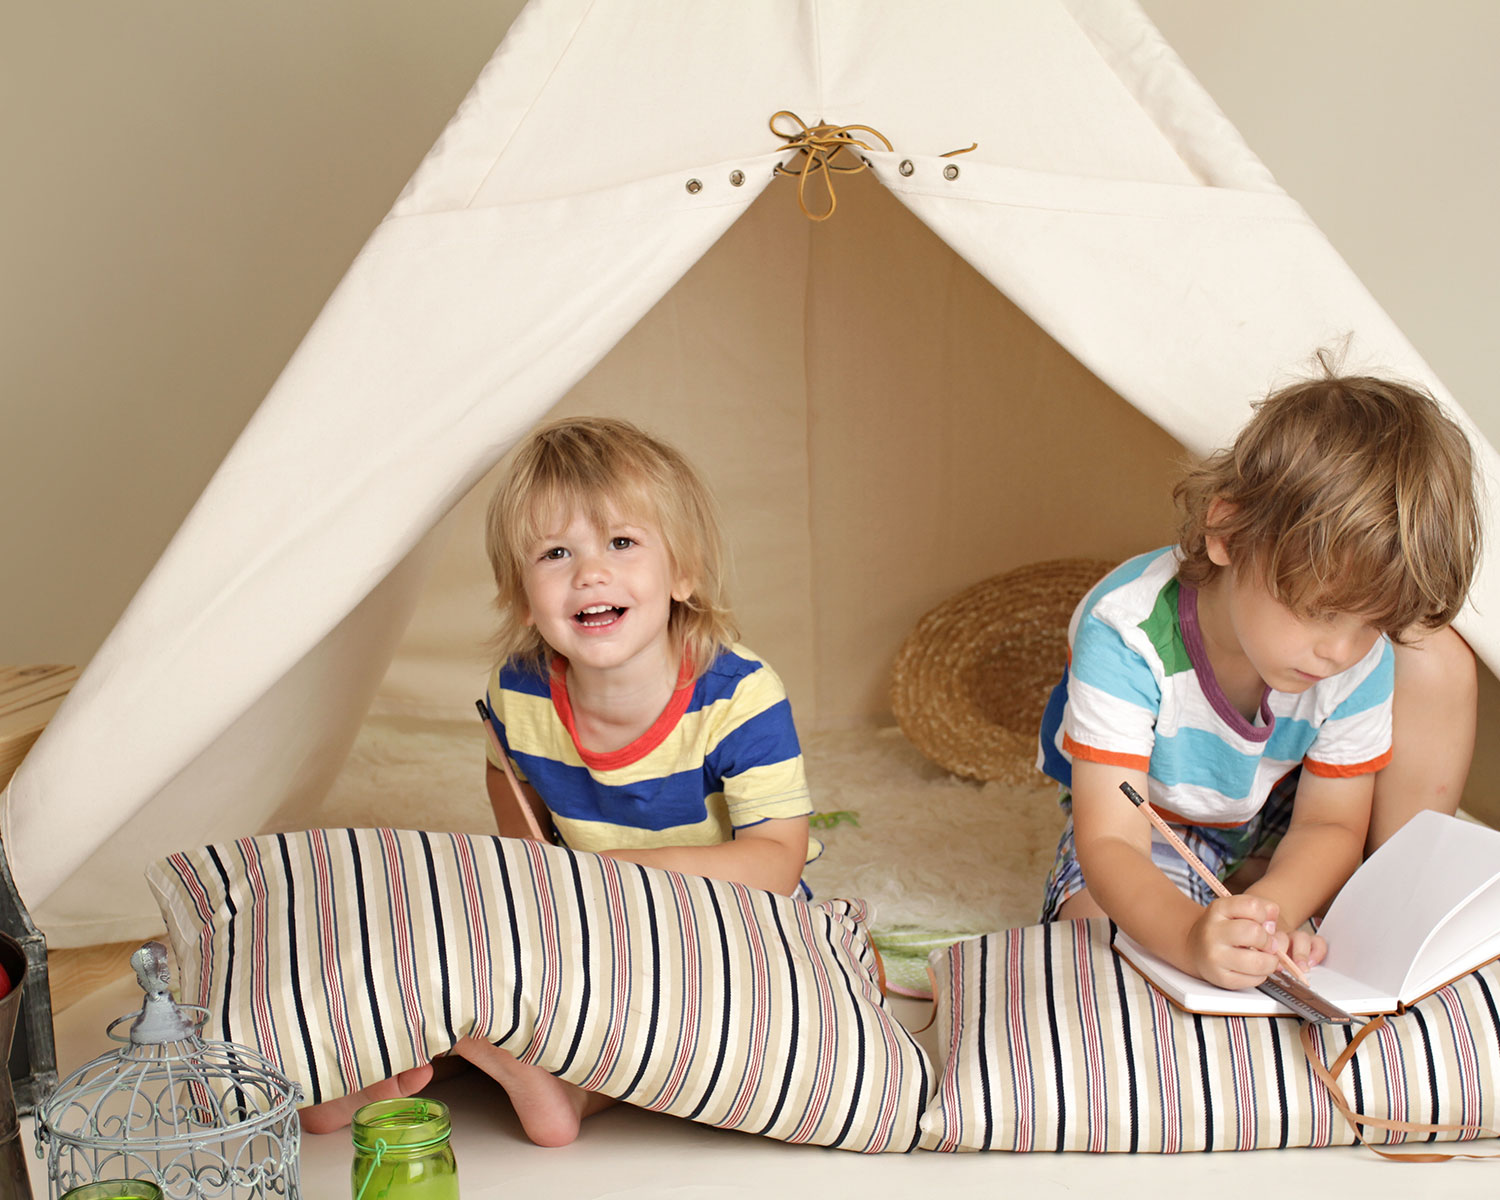 Kids with tent indoors